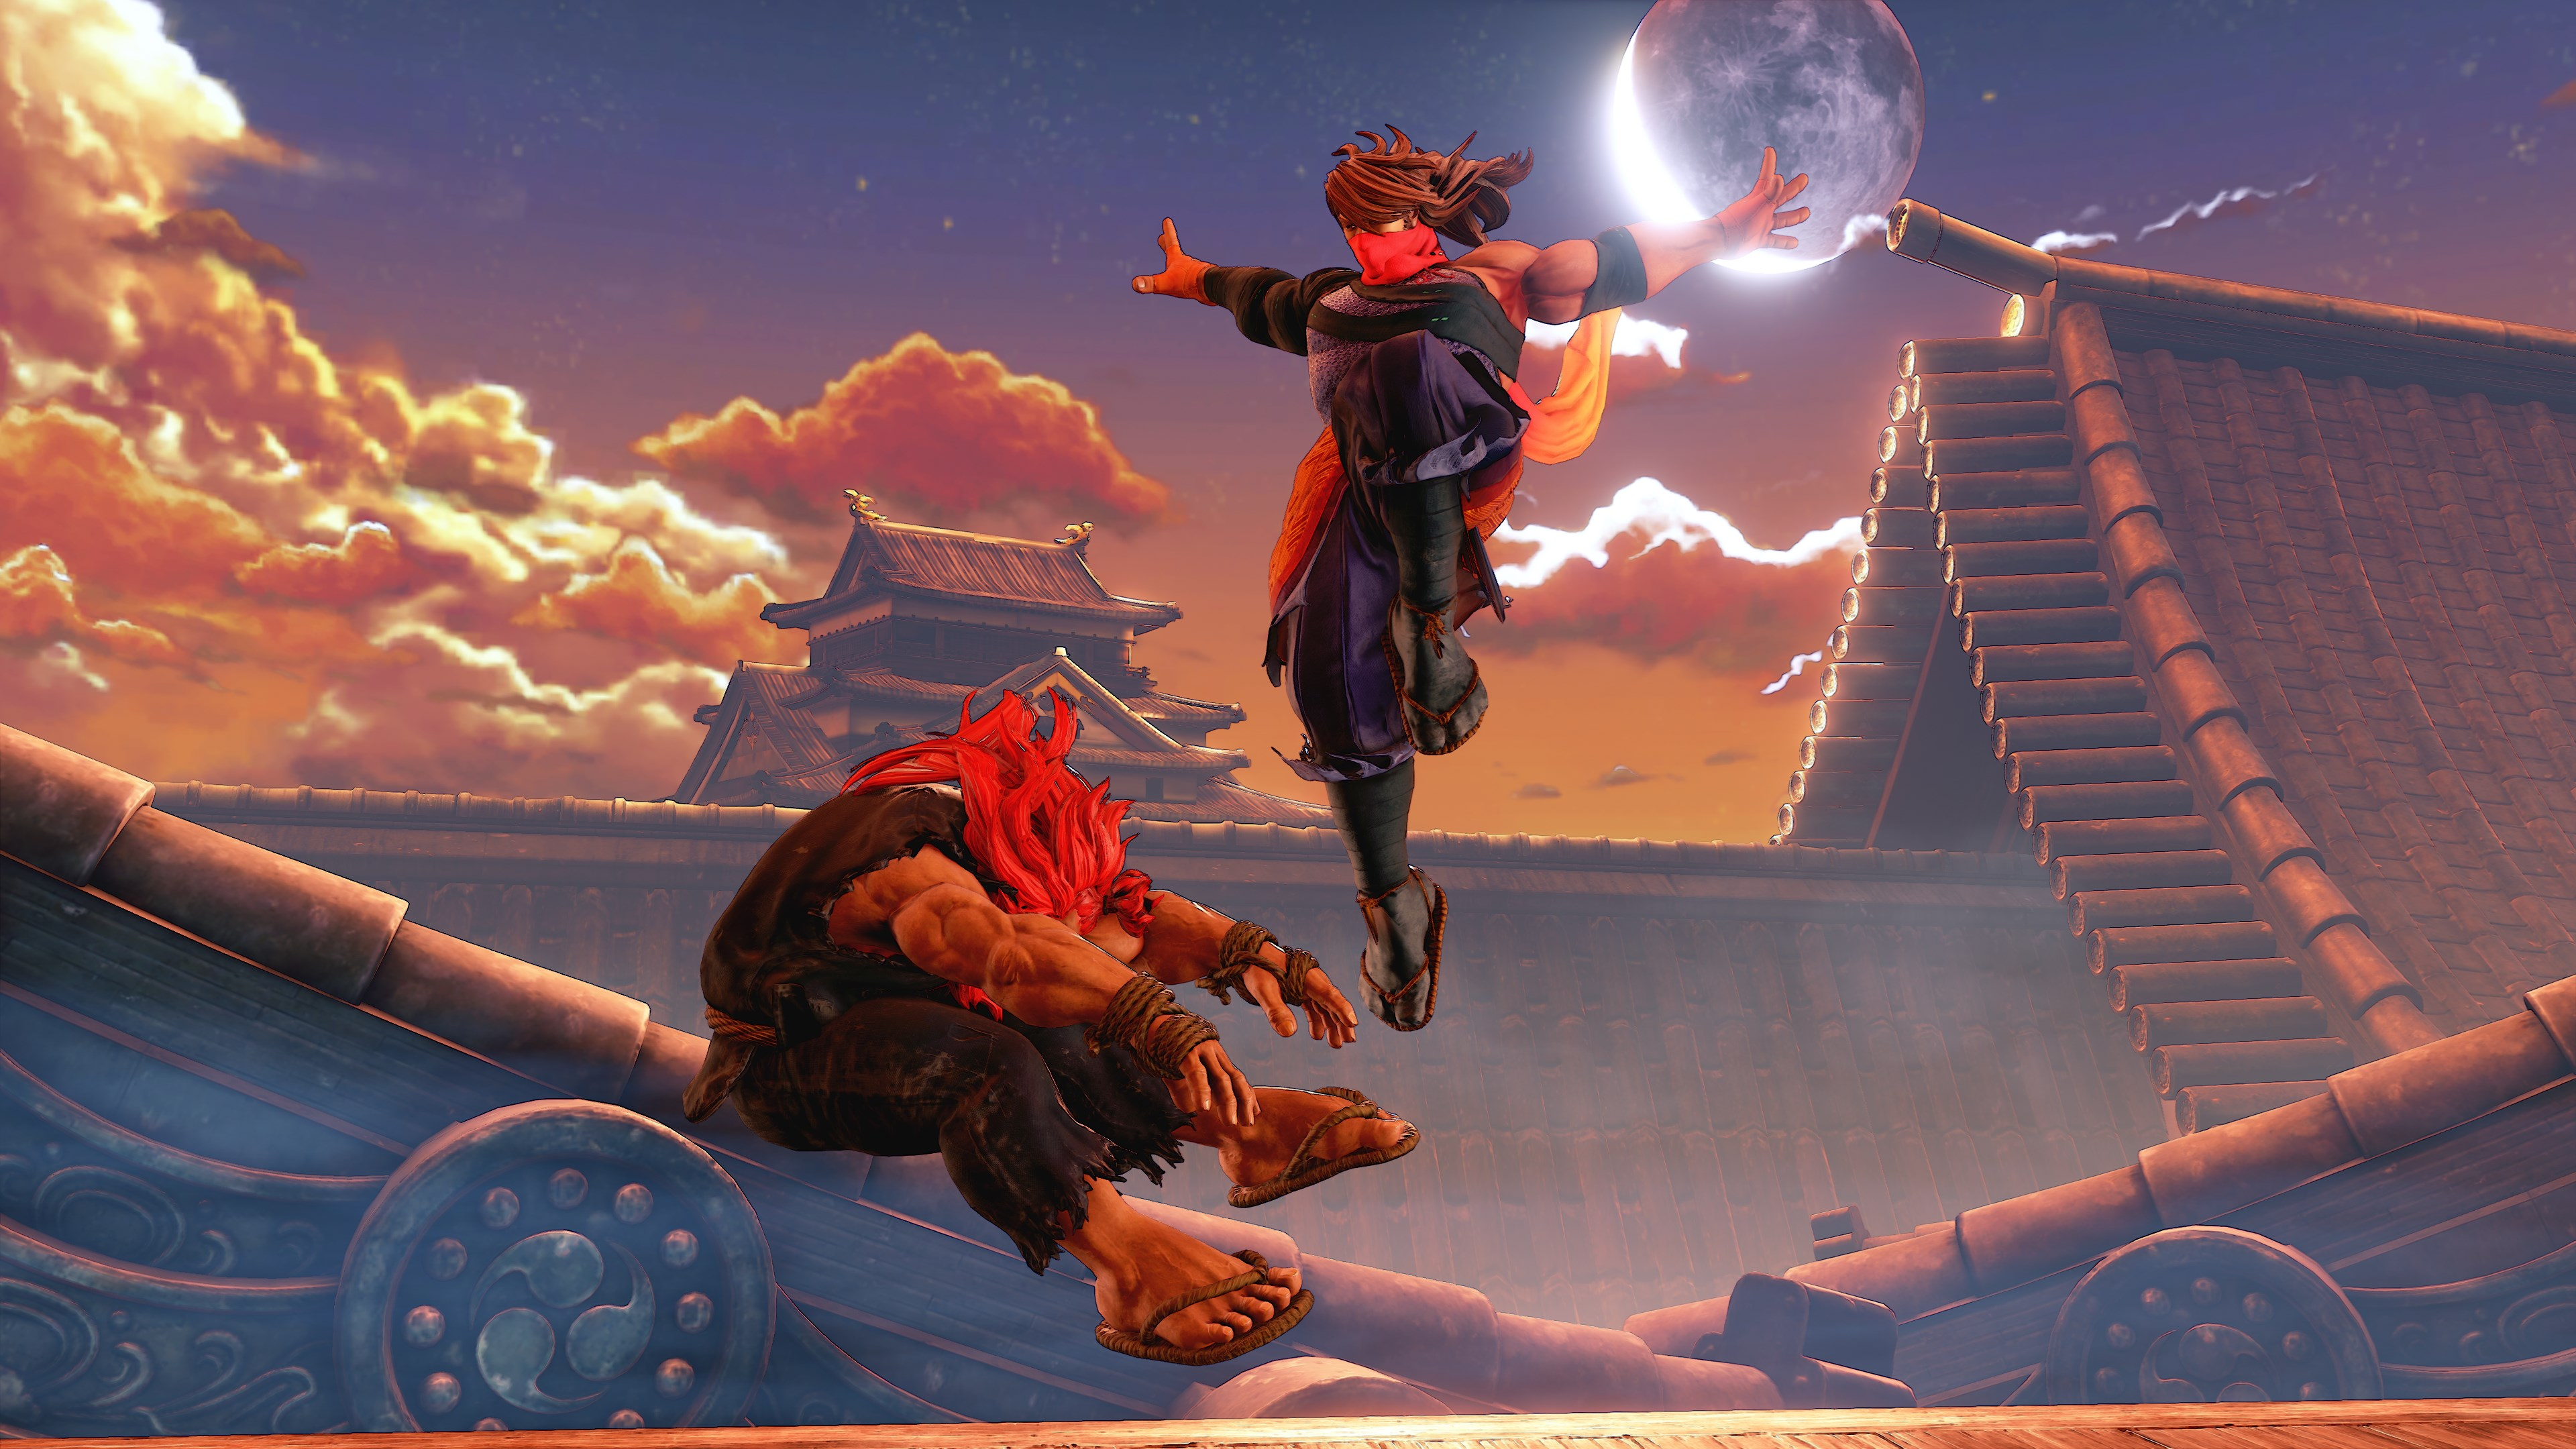 Street Fighter V adds Zeku on October 24